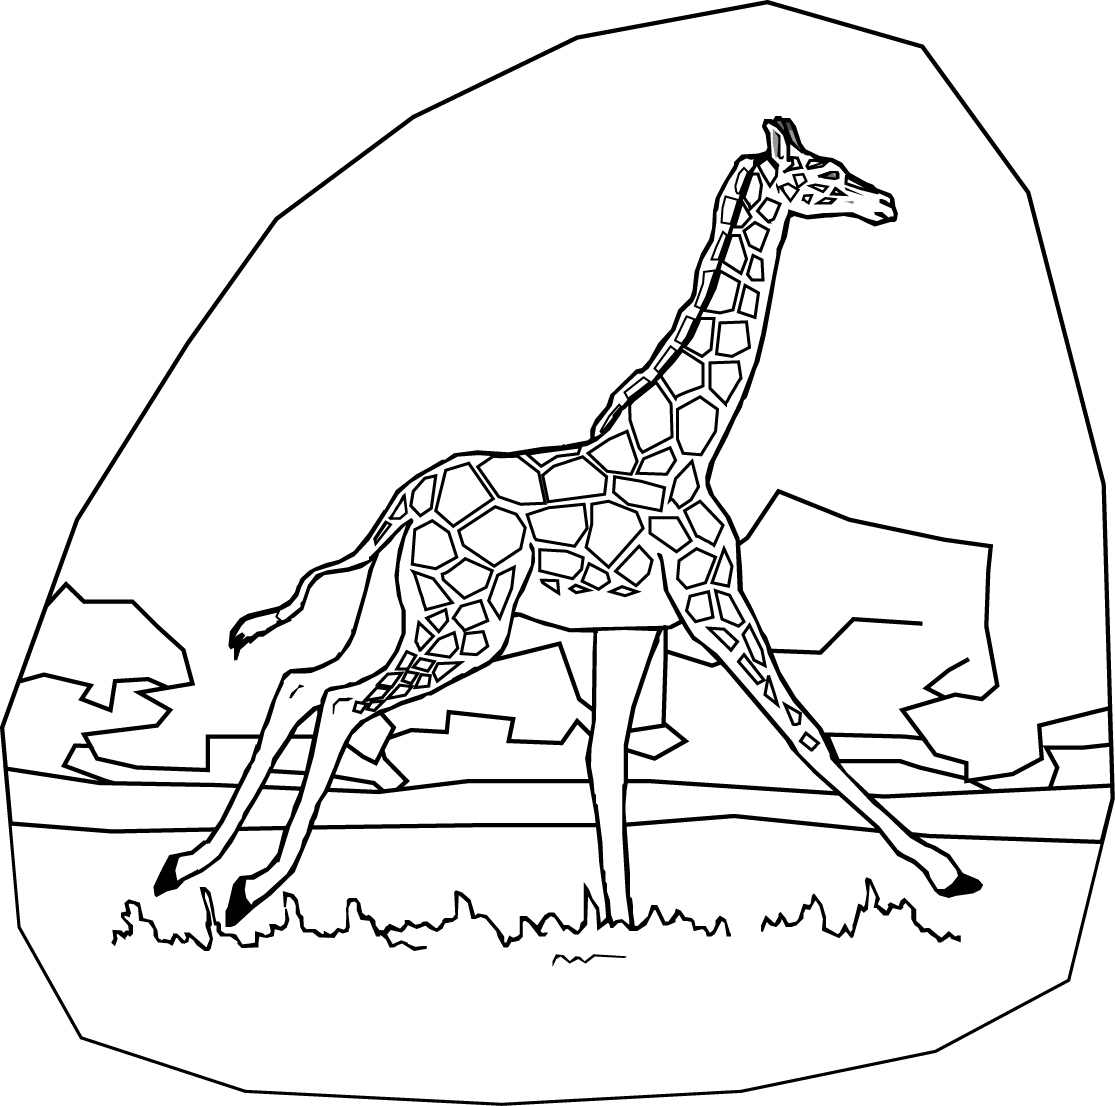 coloring sheets giraffe coloring pages for kids giraffe coloring pages for kids sheets giraffe coloring